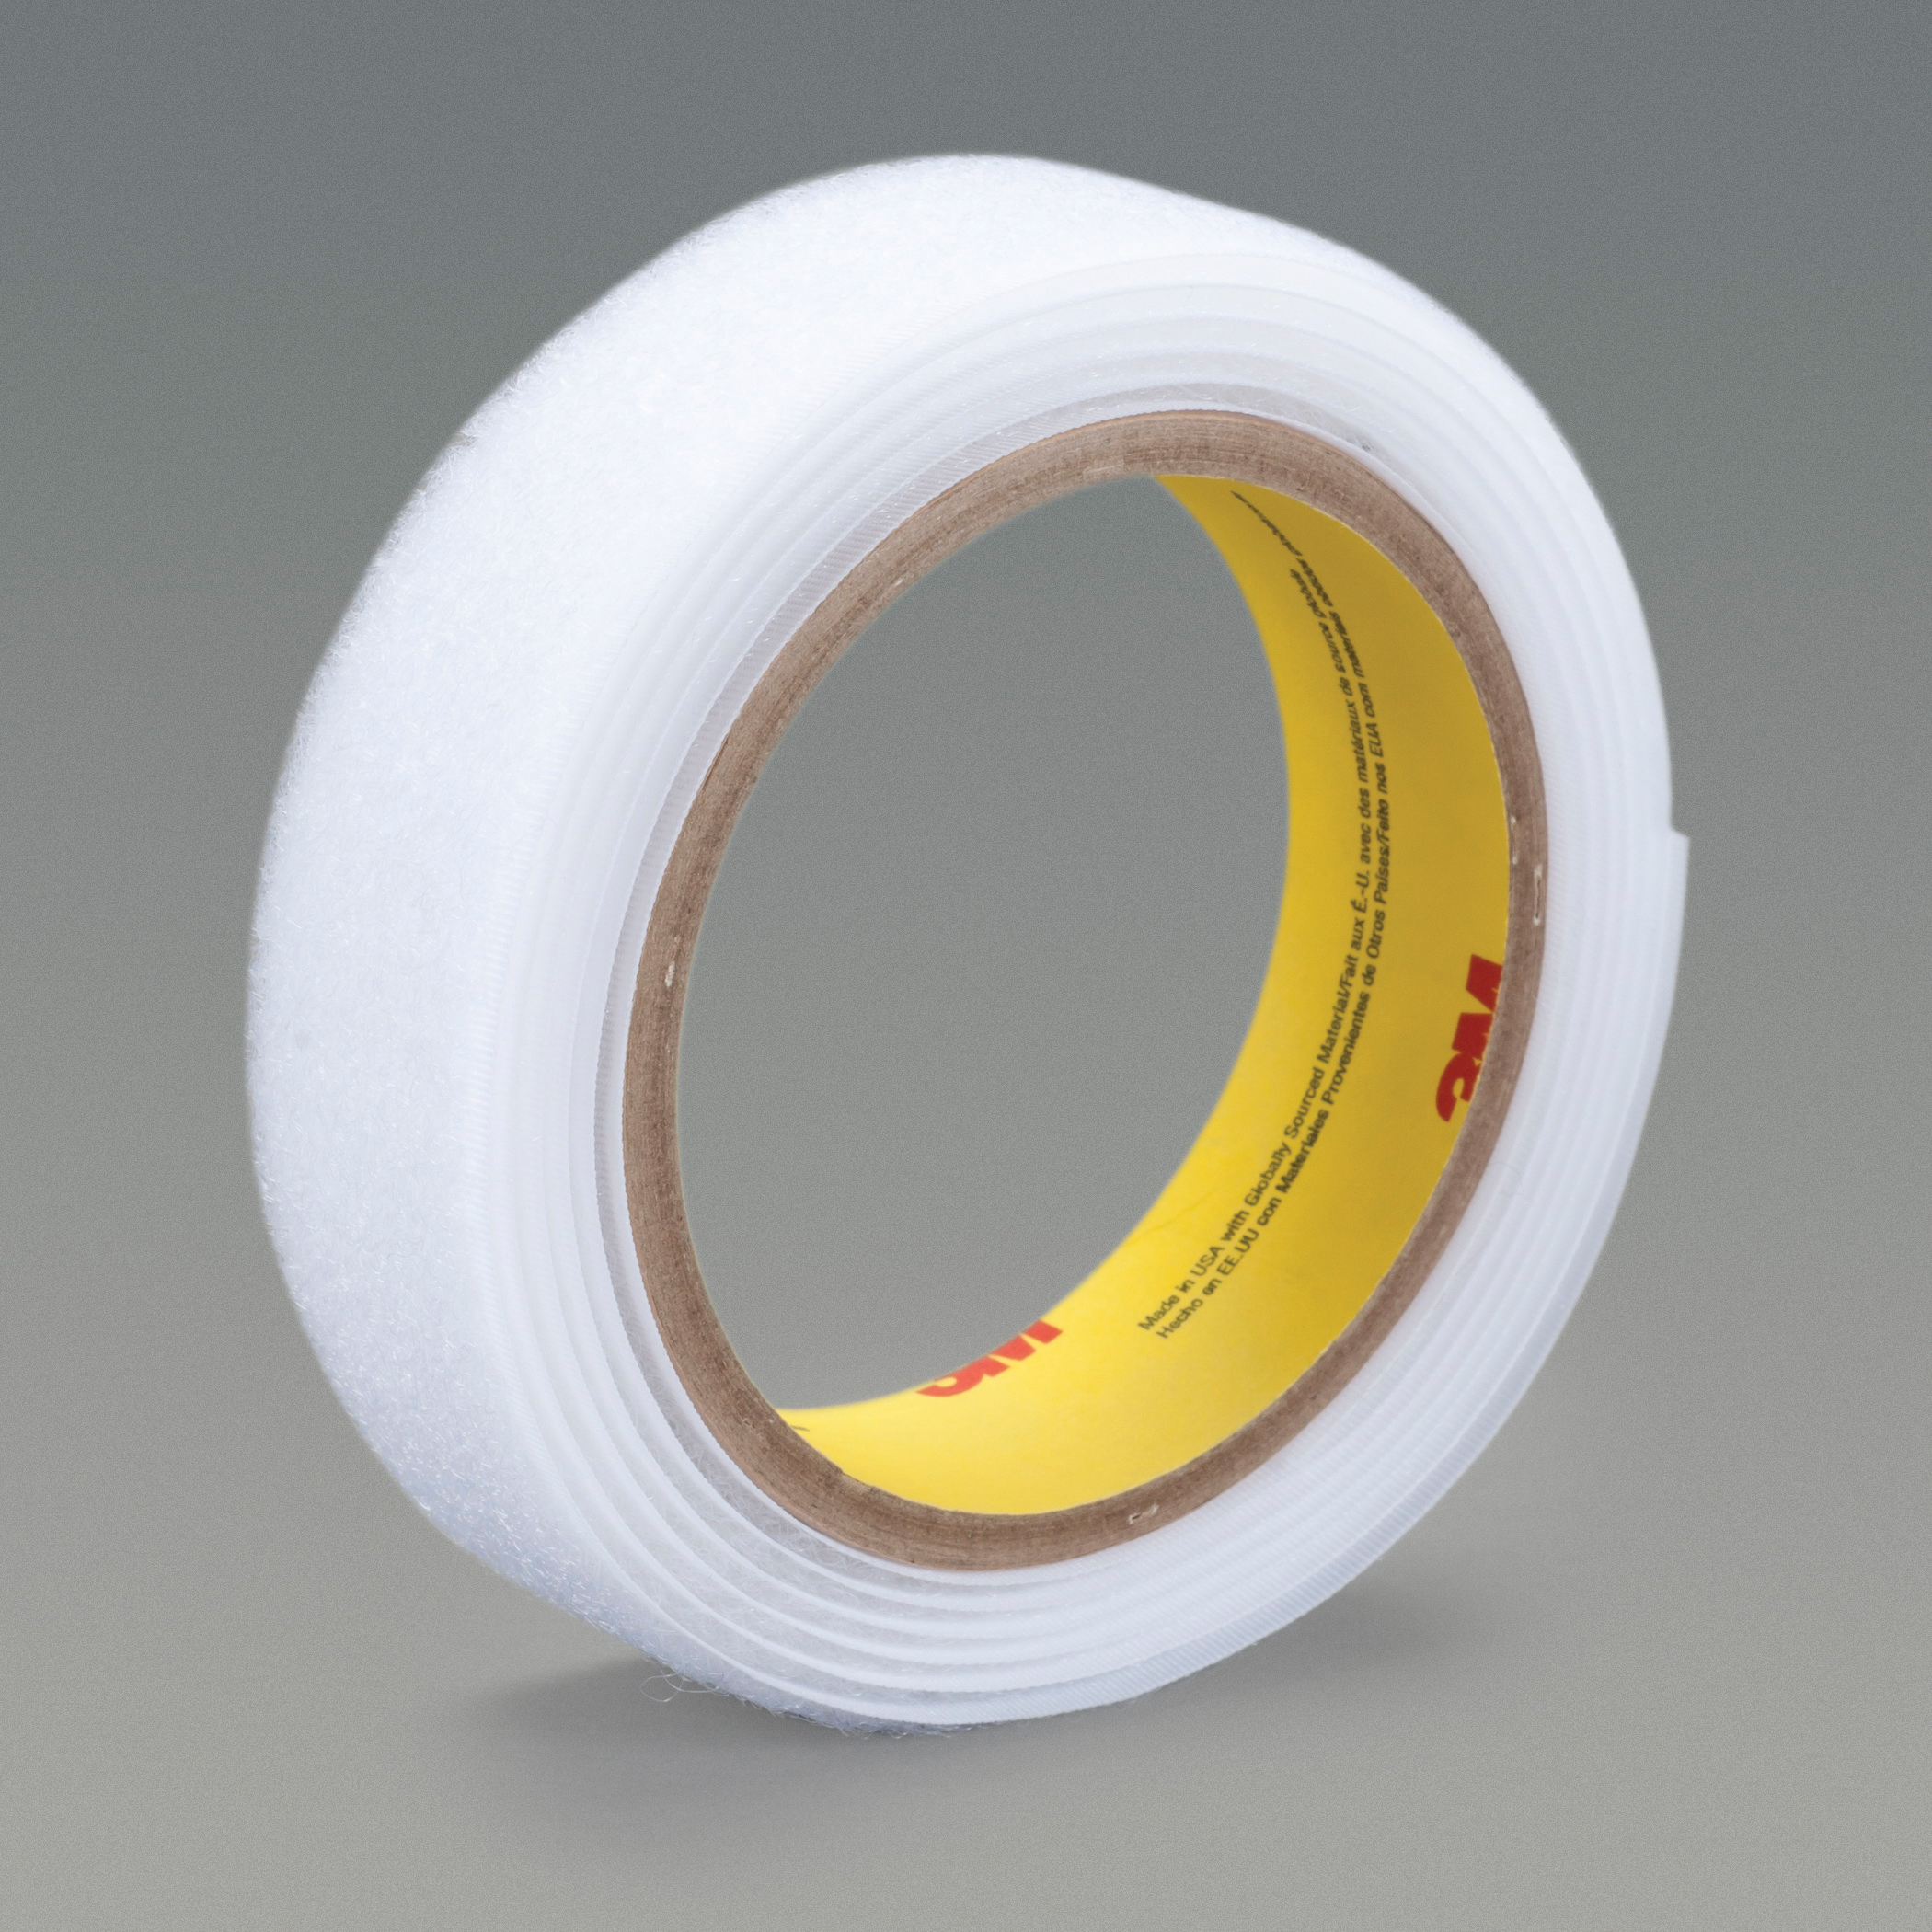 3M™ 021200-87349 Reclosable Loop Fastener Tape, 50 yd L x 1 in W, 0.15 in THK Engaged, Acrylic Adhesive, Woven Nylon Backing, White